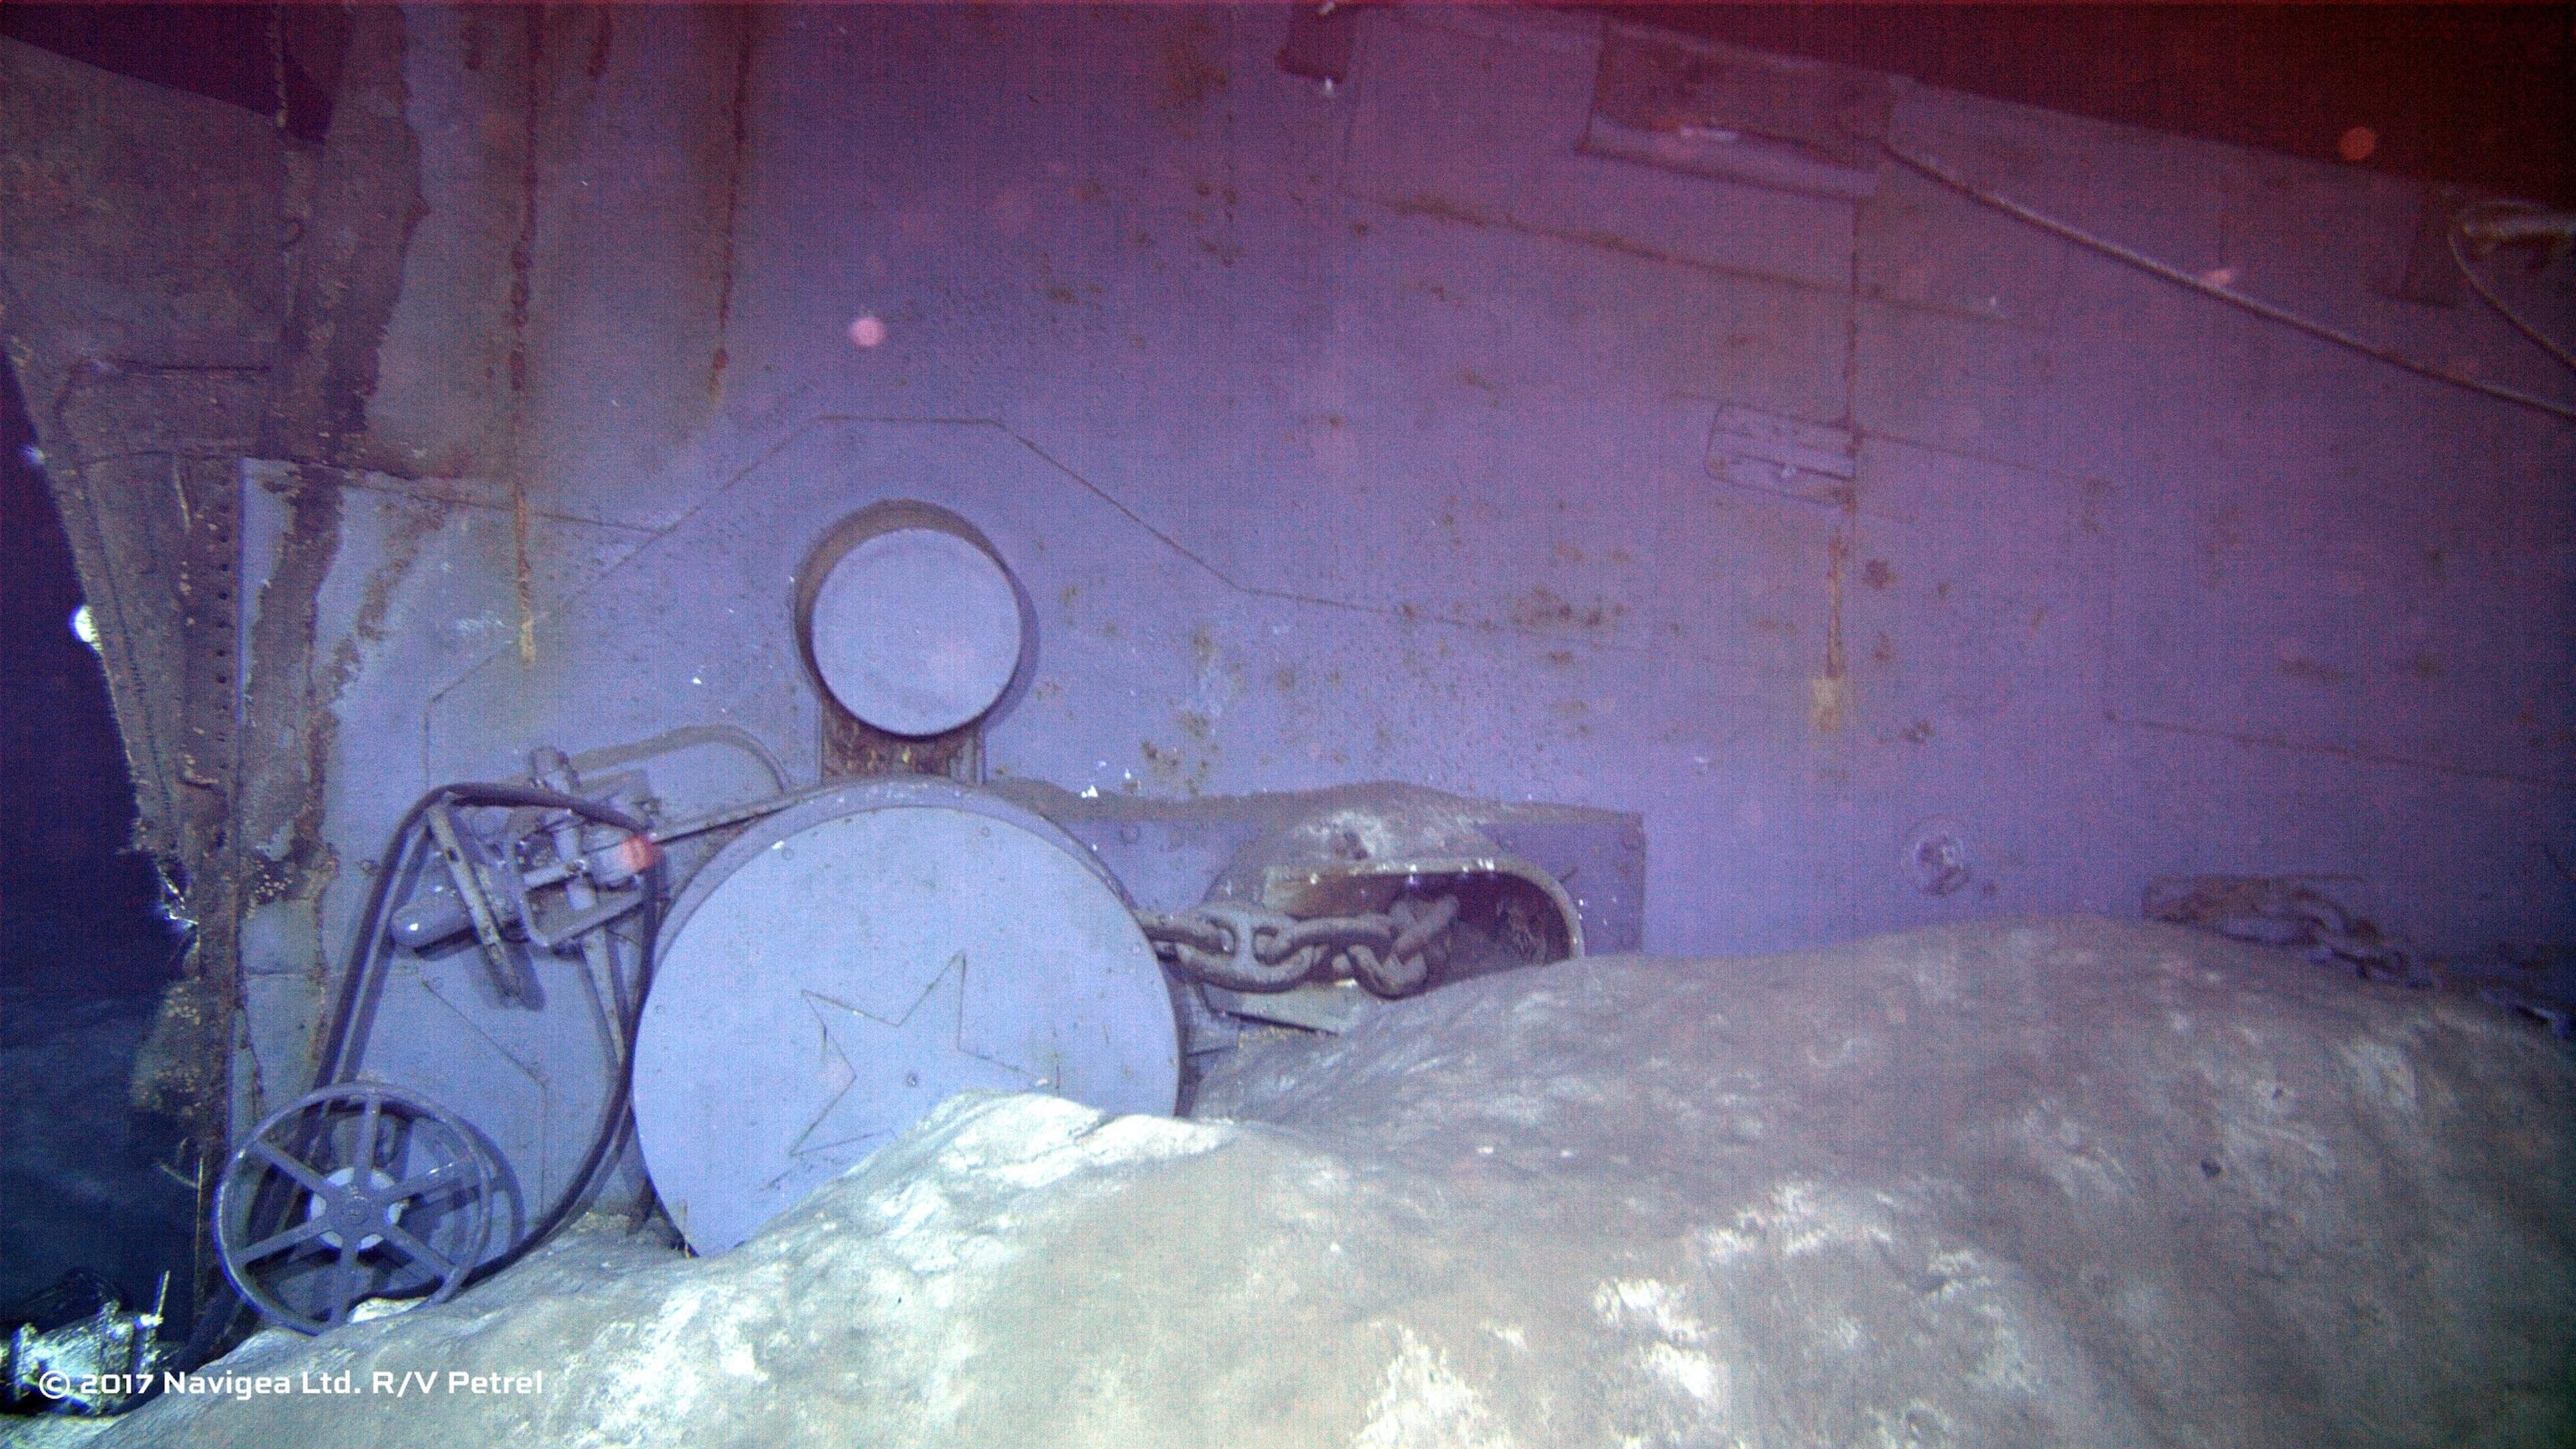 An image shot from a remotely operated vehicle shows wreckage which appears to be one of the two anchor windlass mechanisms from the forecastle of the ship.  Note the star-emblazoned capstans in this photo dated July 12, 1945 just weeks before the ship was lost.  Photo courtesy Paul G. Allen.